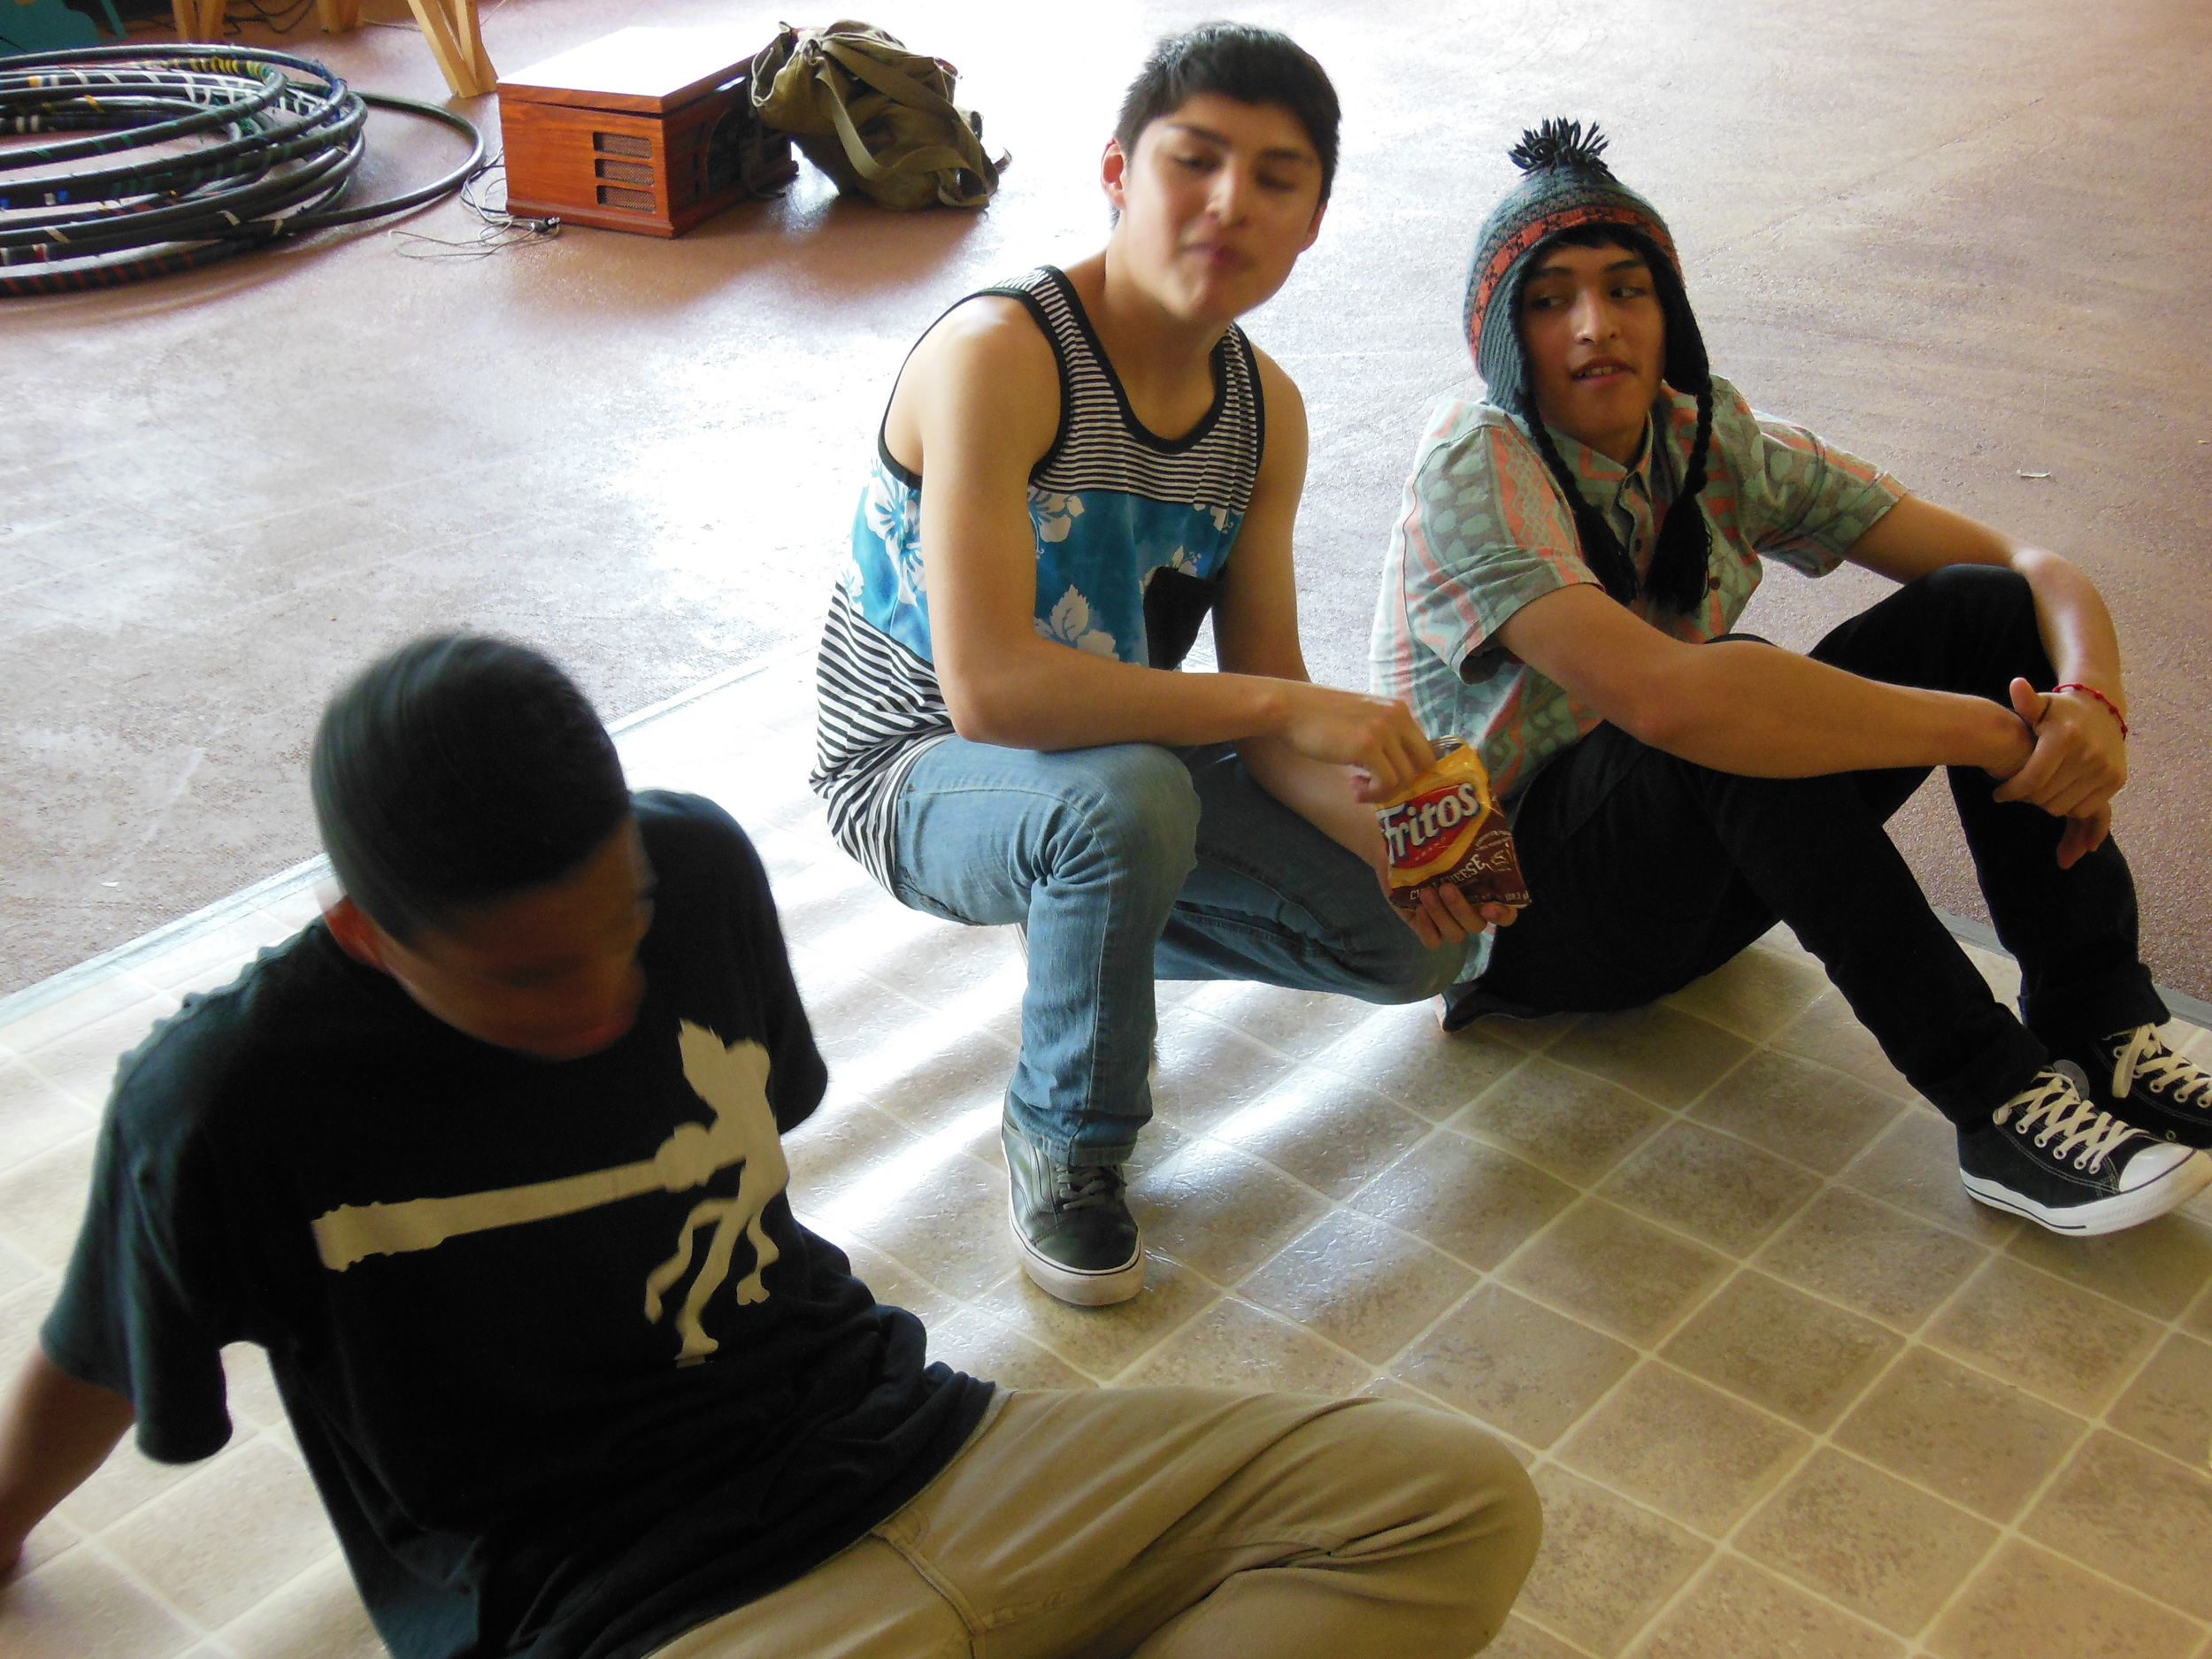 Bboy's taking a breather from breakdancing during MYP's Hip Hop program in East Portland.